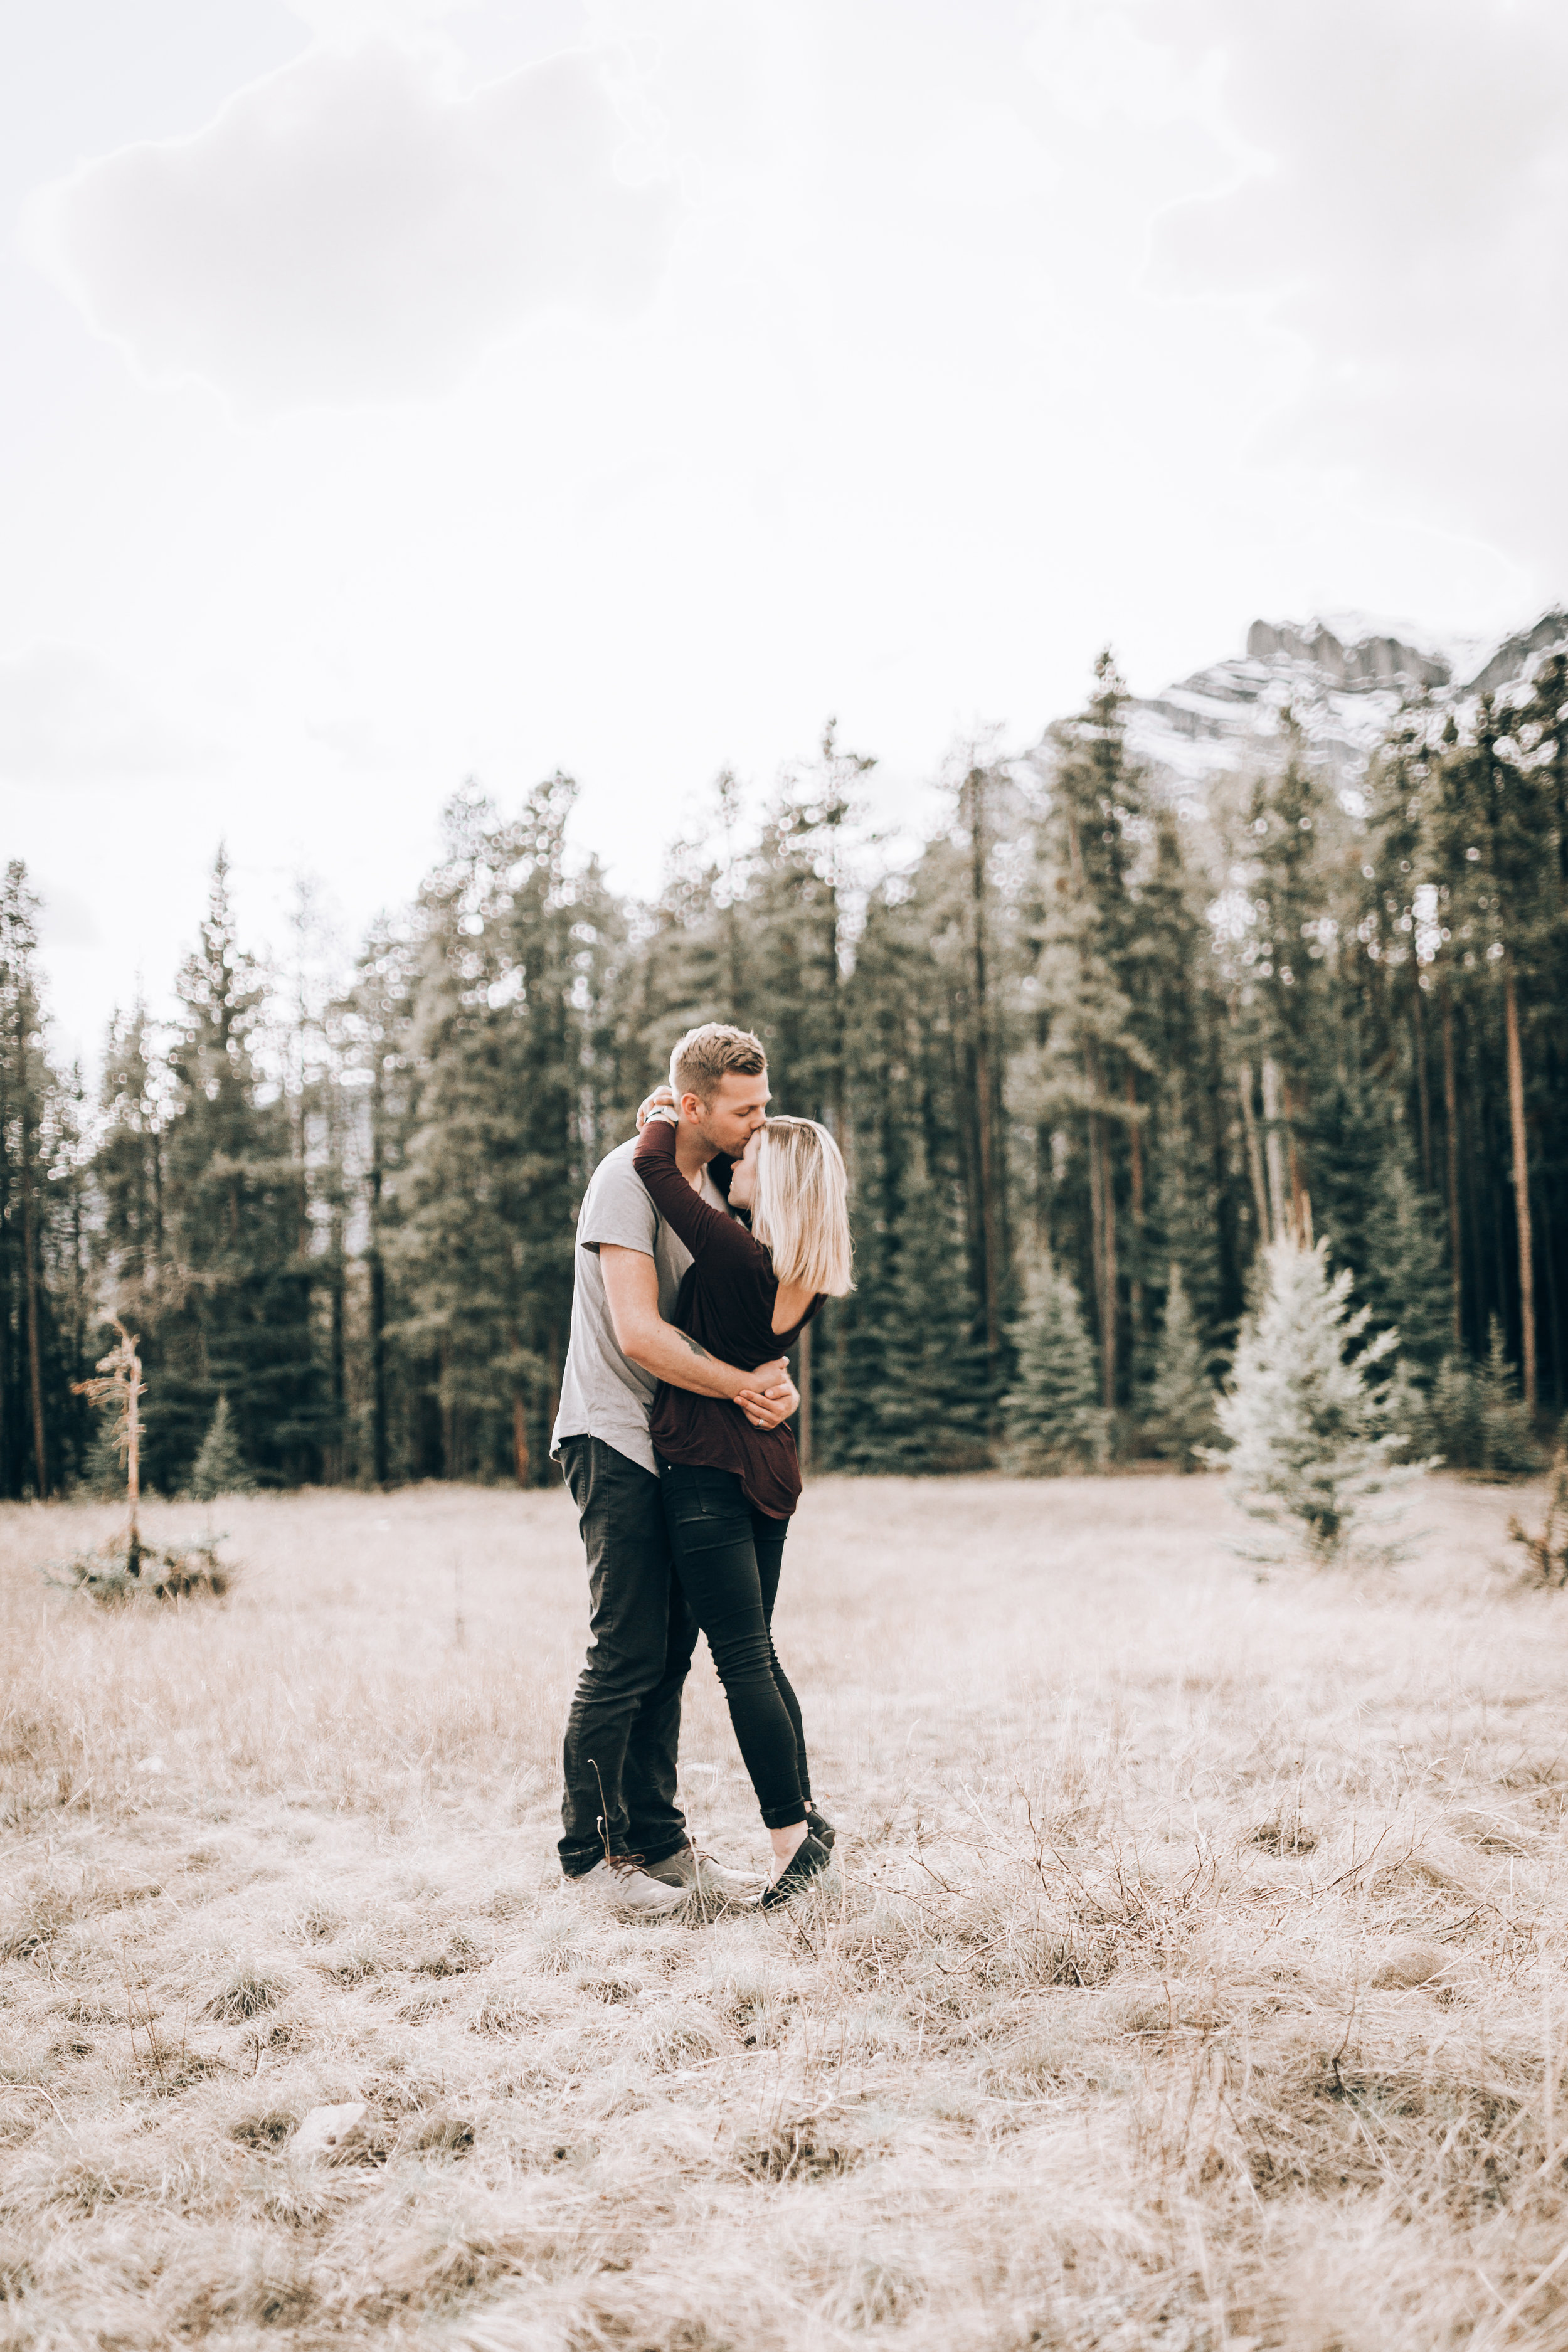 simpleperfectionsphotography.cullen+chelsey-14.jpg